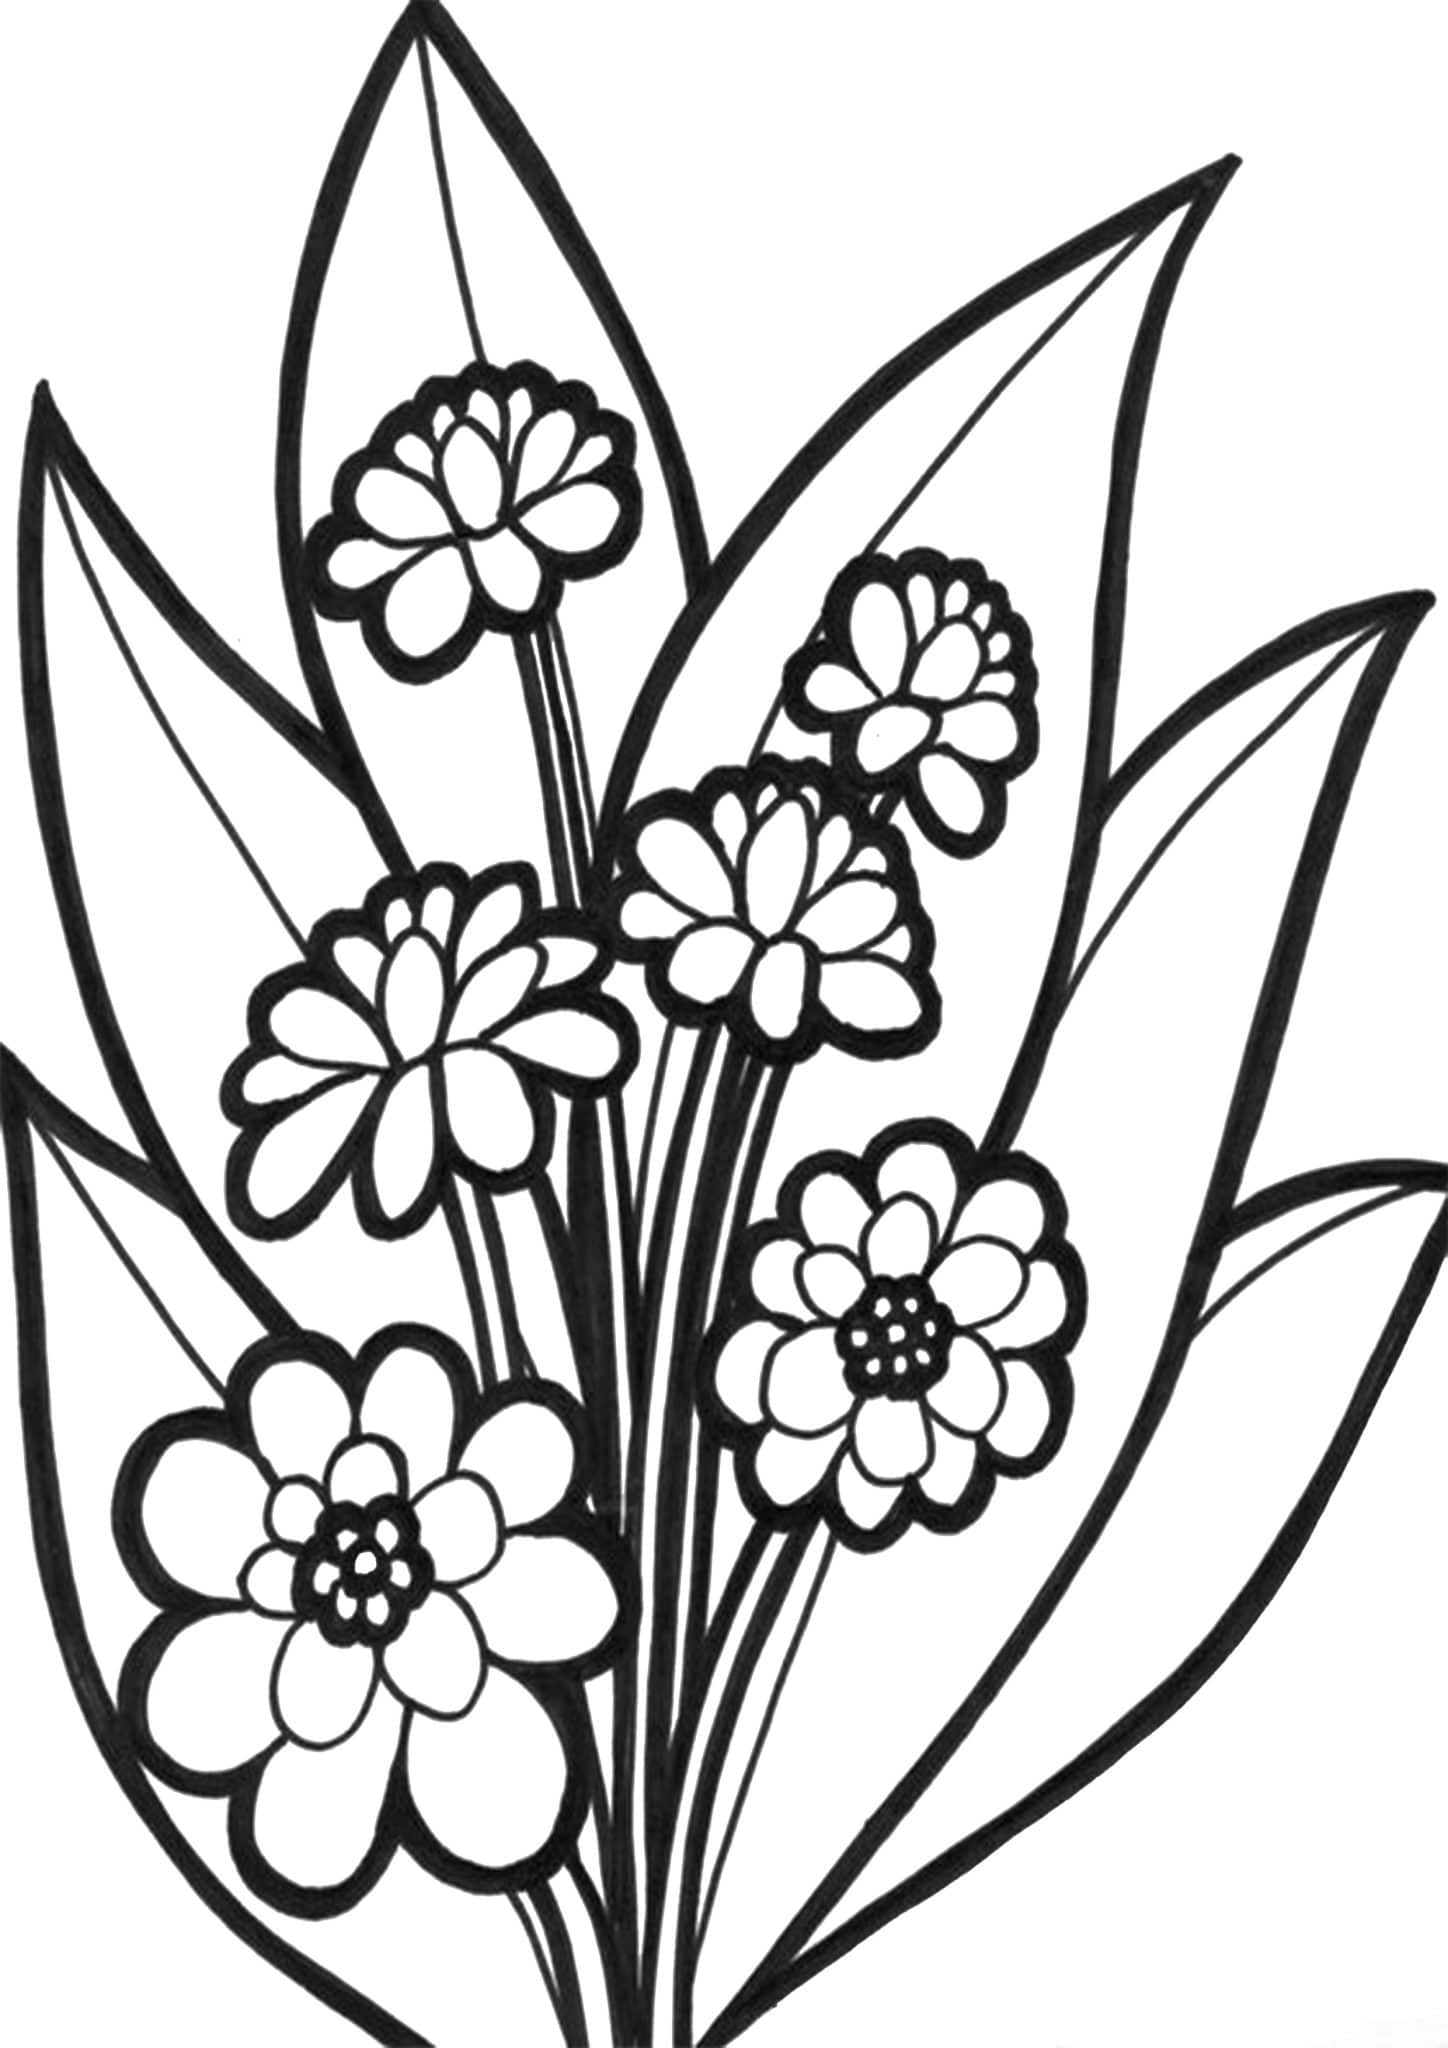 free coloring pages of flowers flower coloring pages coloringrocks flowers pages of coloring free